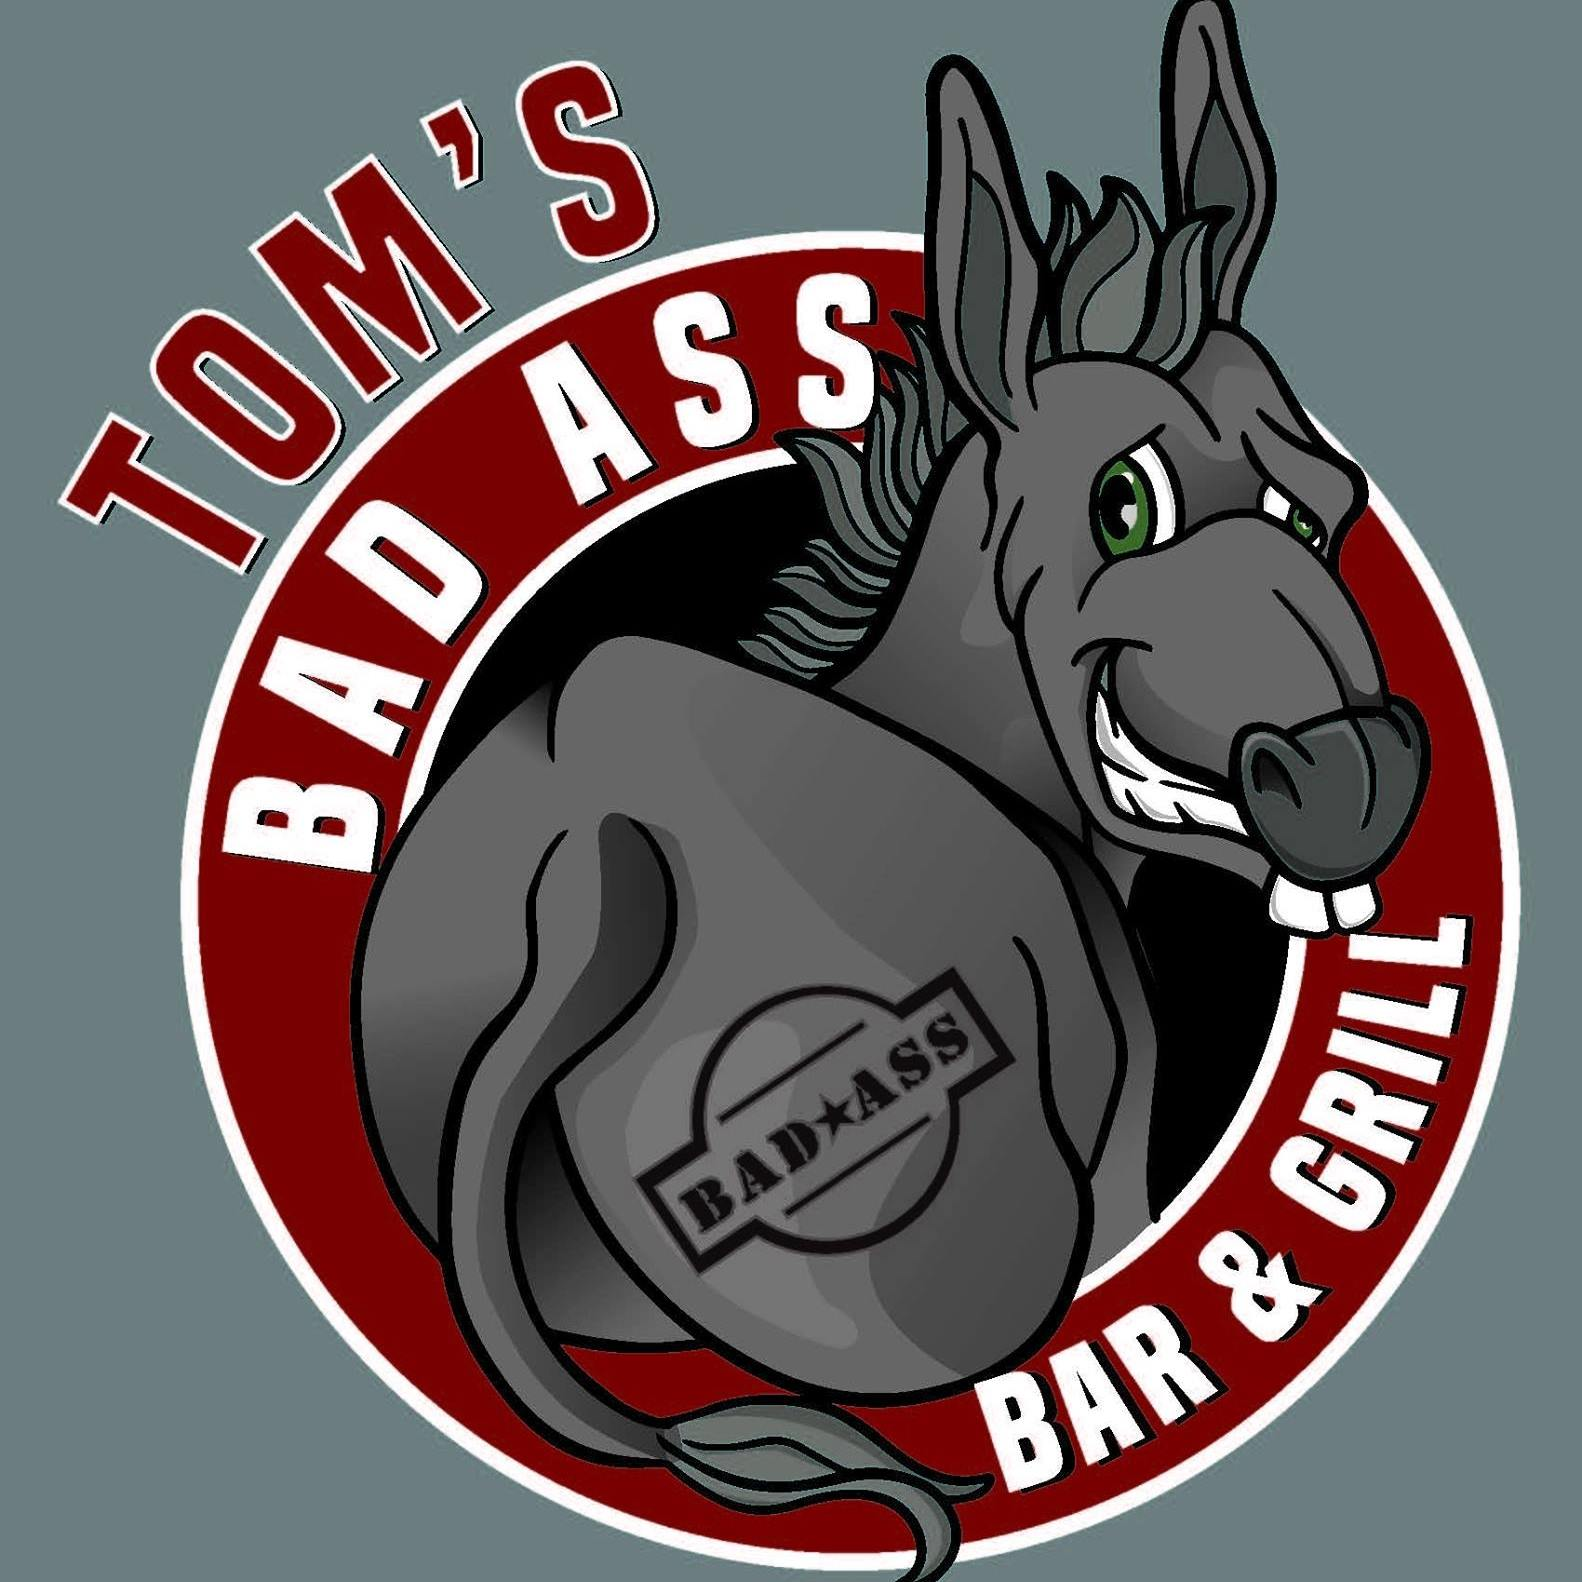 Toms Bad Ass Bar and Grill